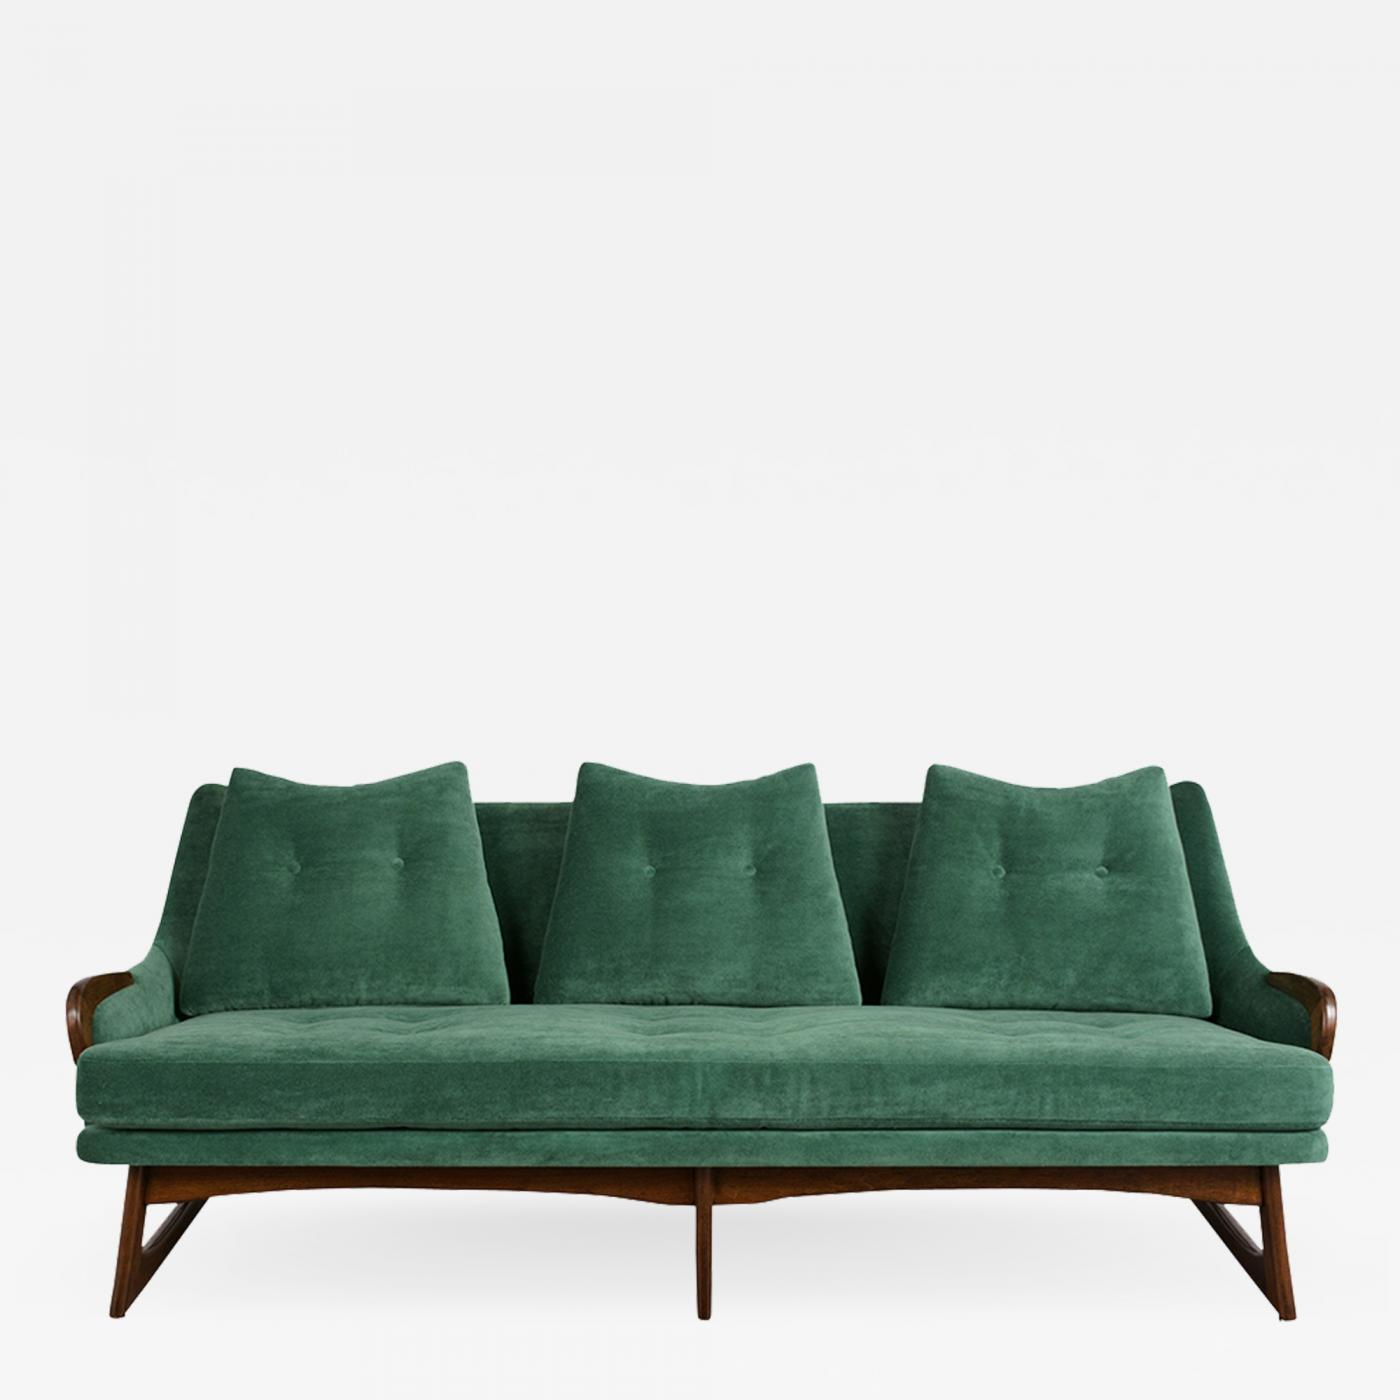 Adrian Pearsall - Completely Restored Mid Century Modern Sofa Attributed to  Adrian Pearsall